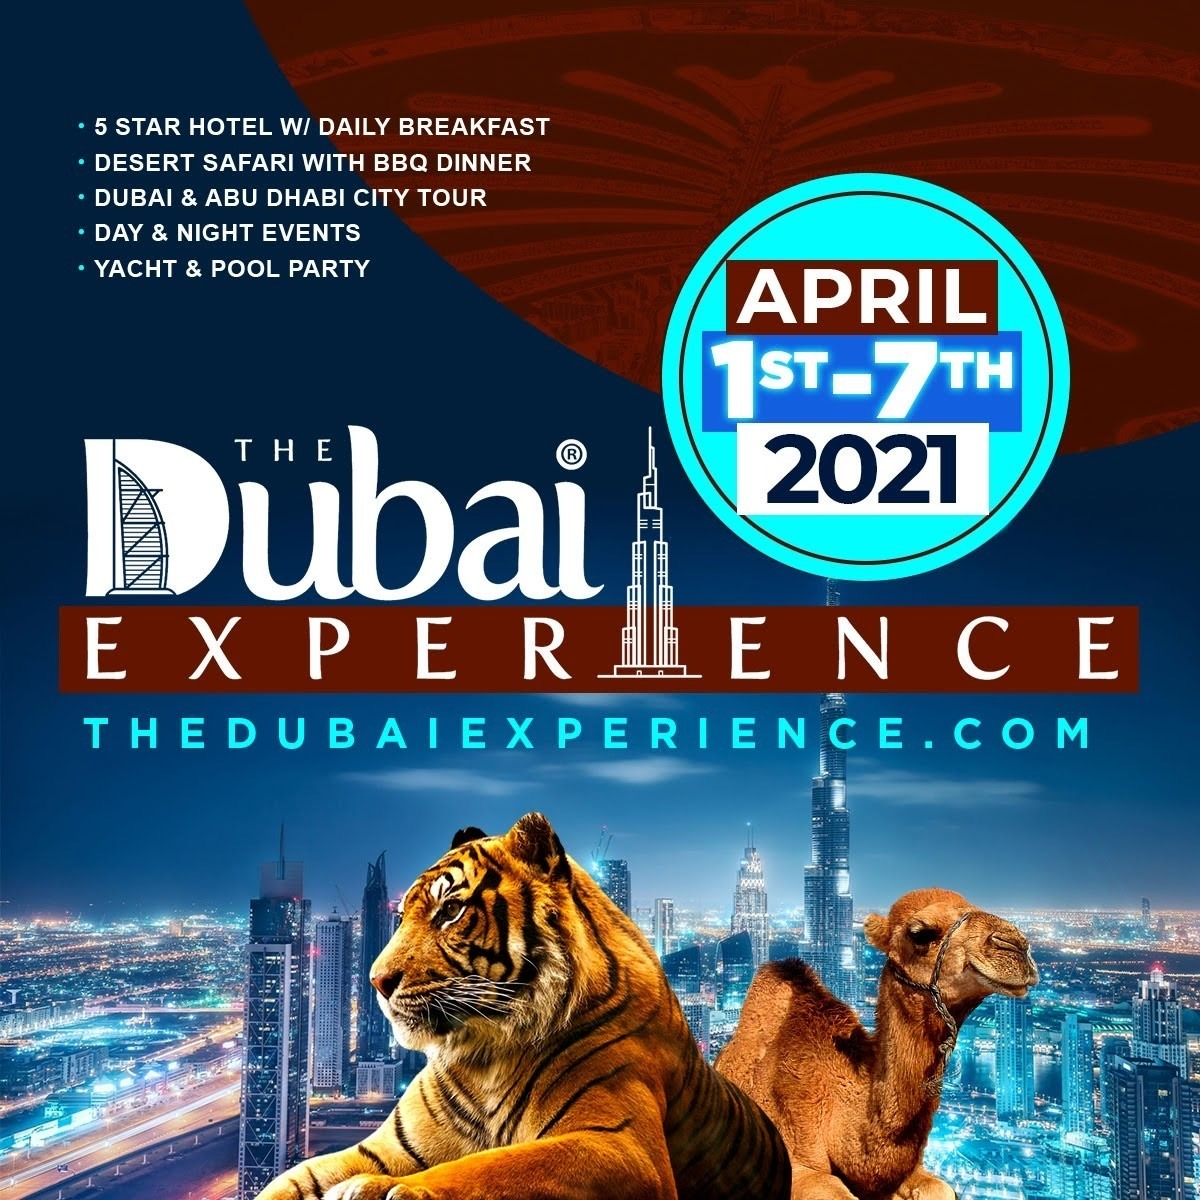 THE DUBAI EXPERIENCE APRIL 1 - 7, 2021